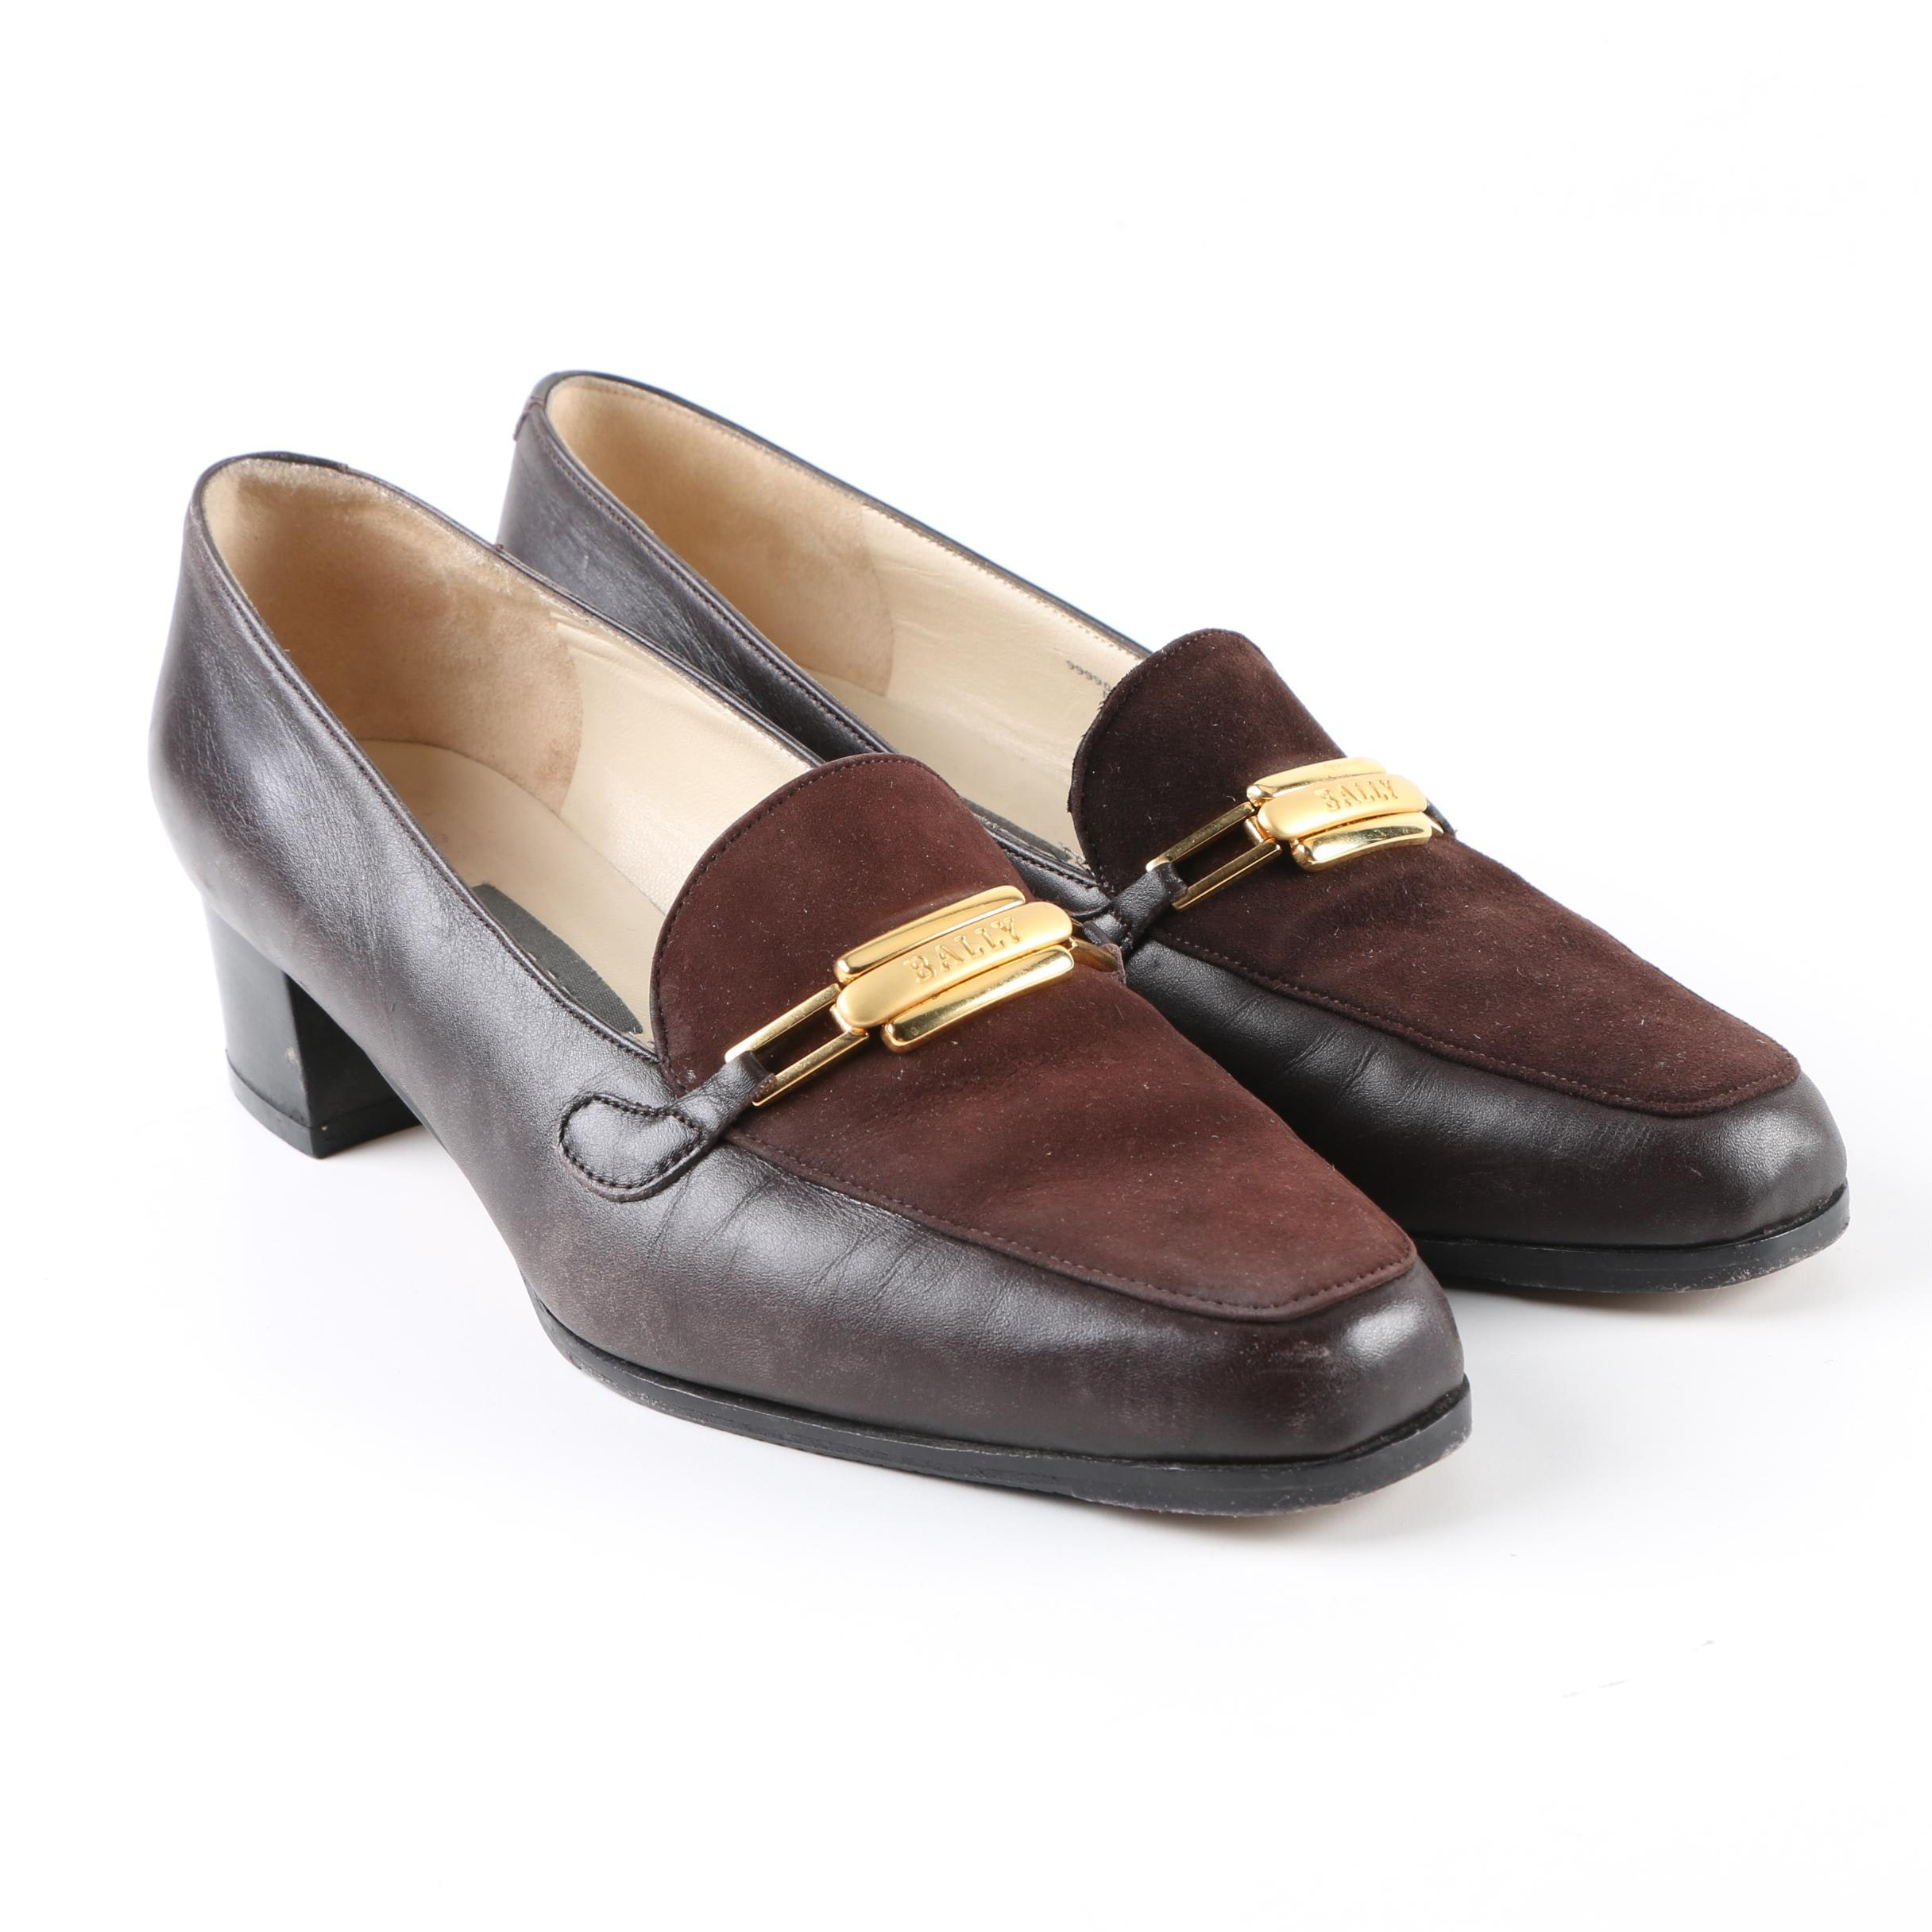 Women's Bally of Switzerland Espresso Brown Leather and Suede Loafers